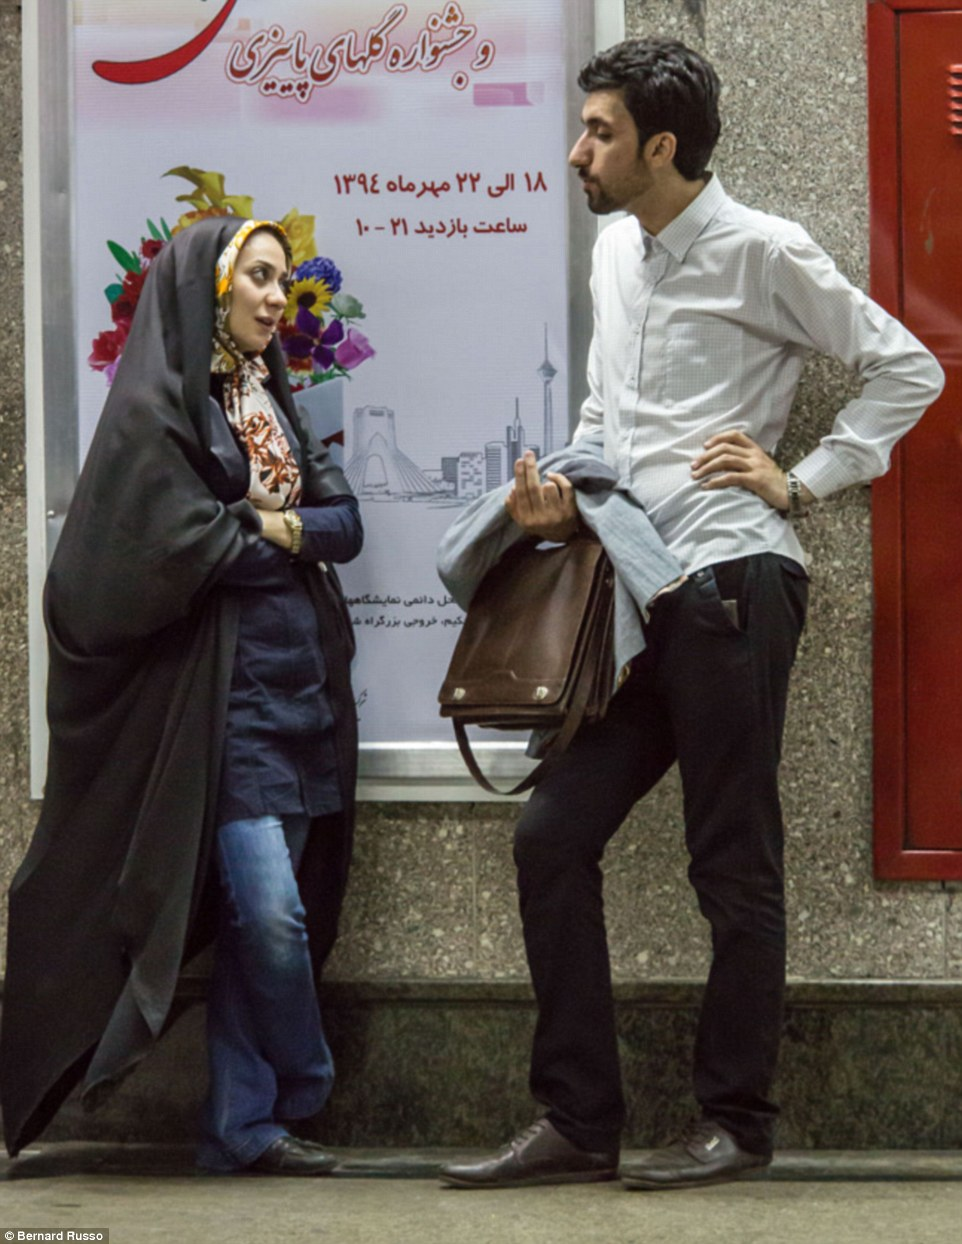 A young woman and man seem to flirt while waiting for a train on the Metro